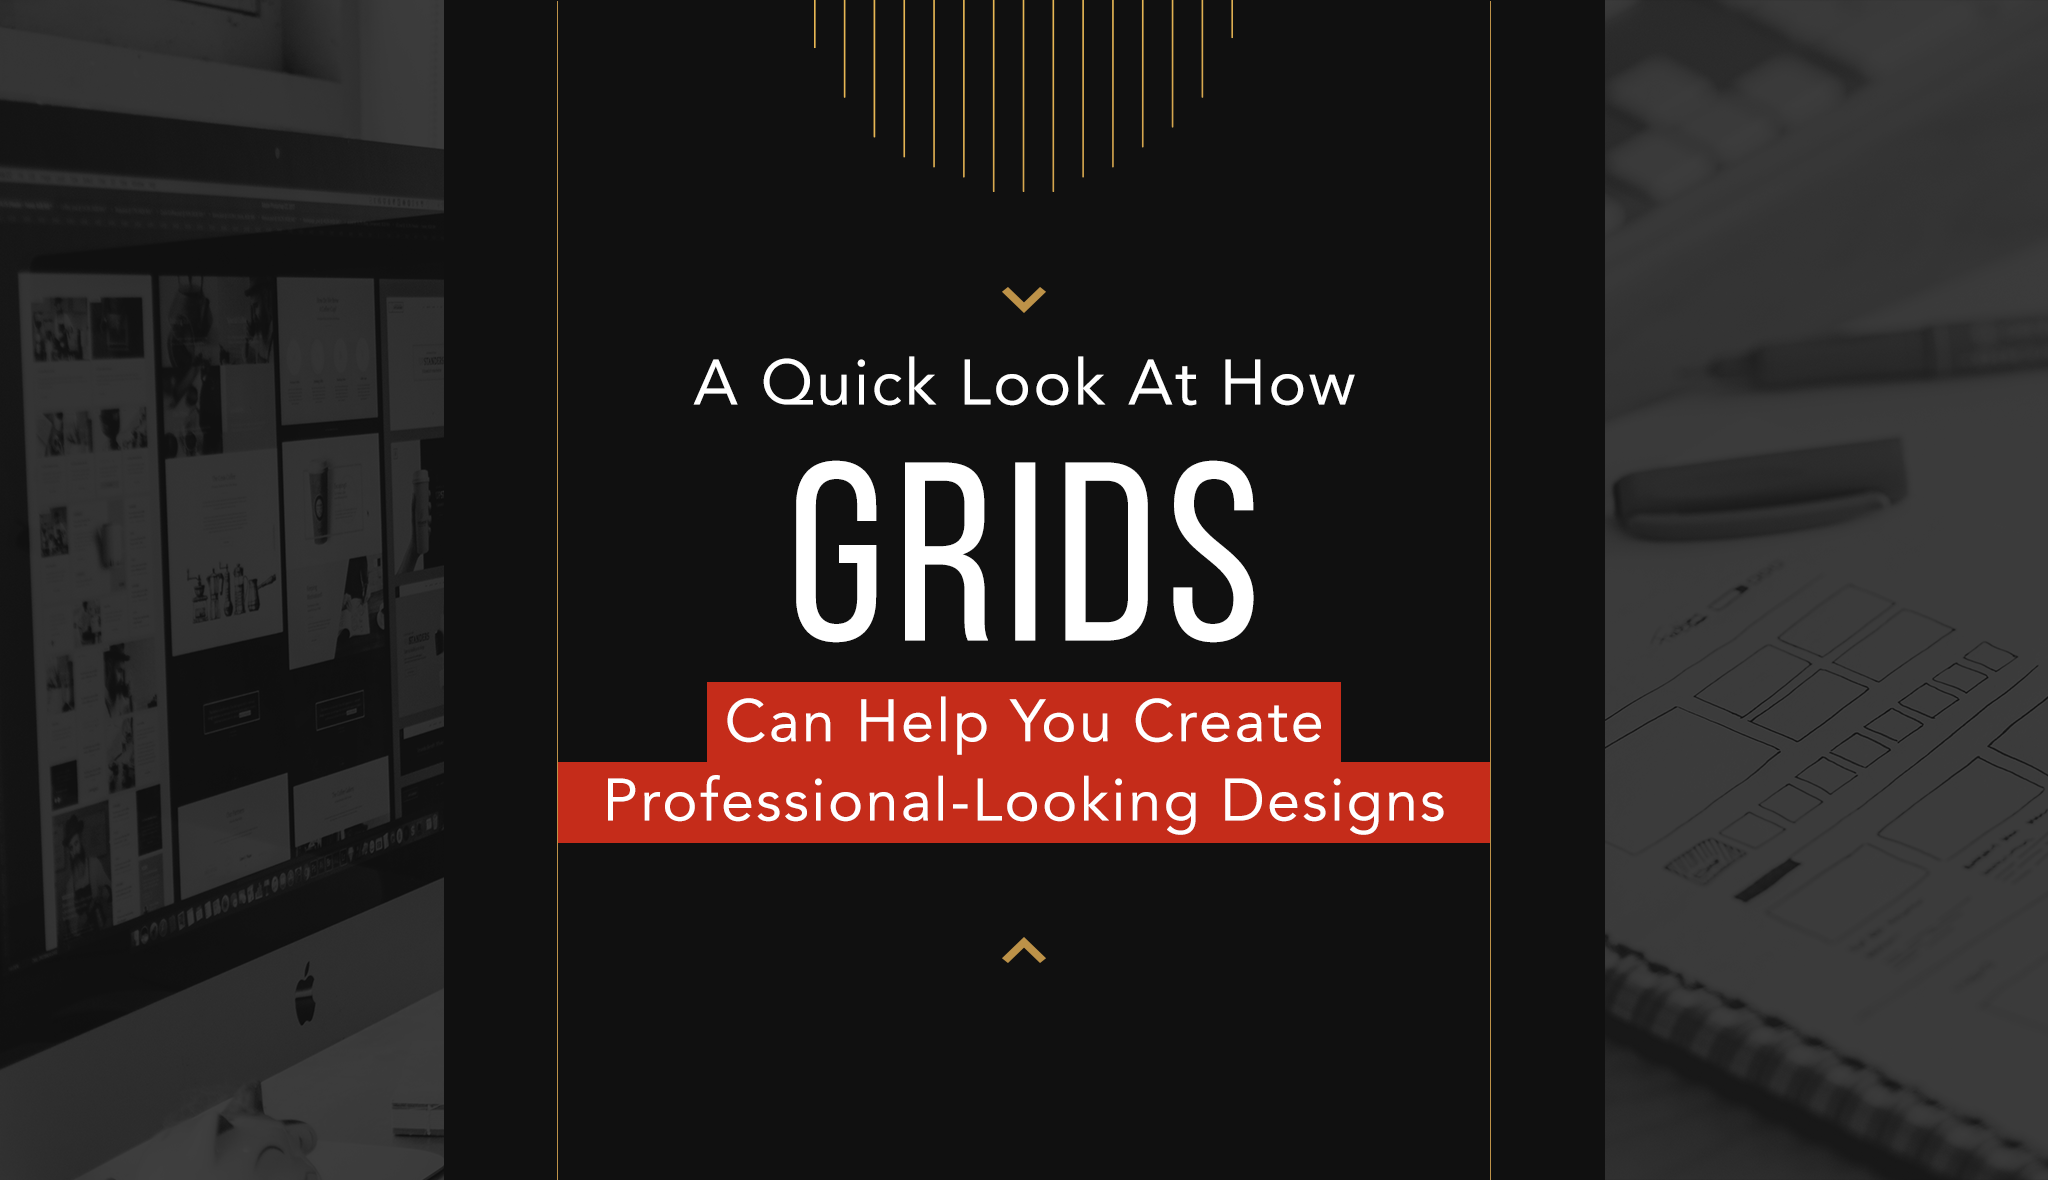 Layout Design: Types of Grids for Creating Professional-Looking